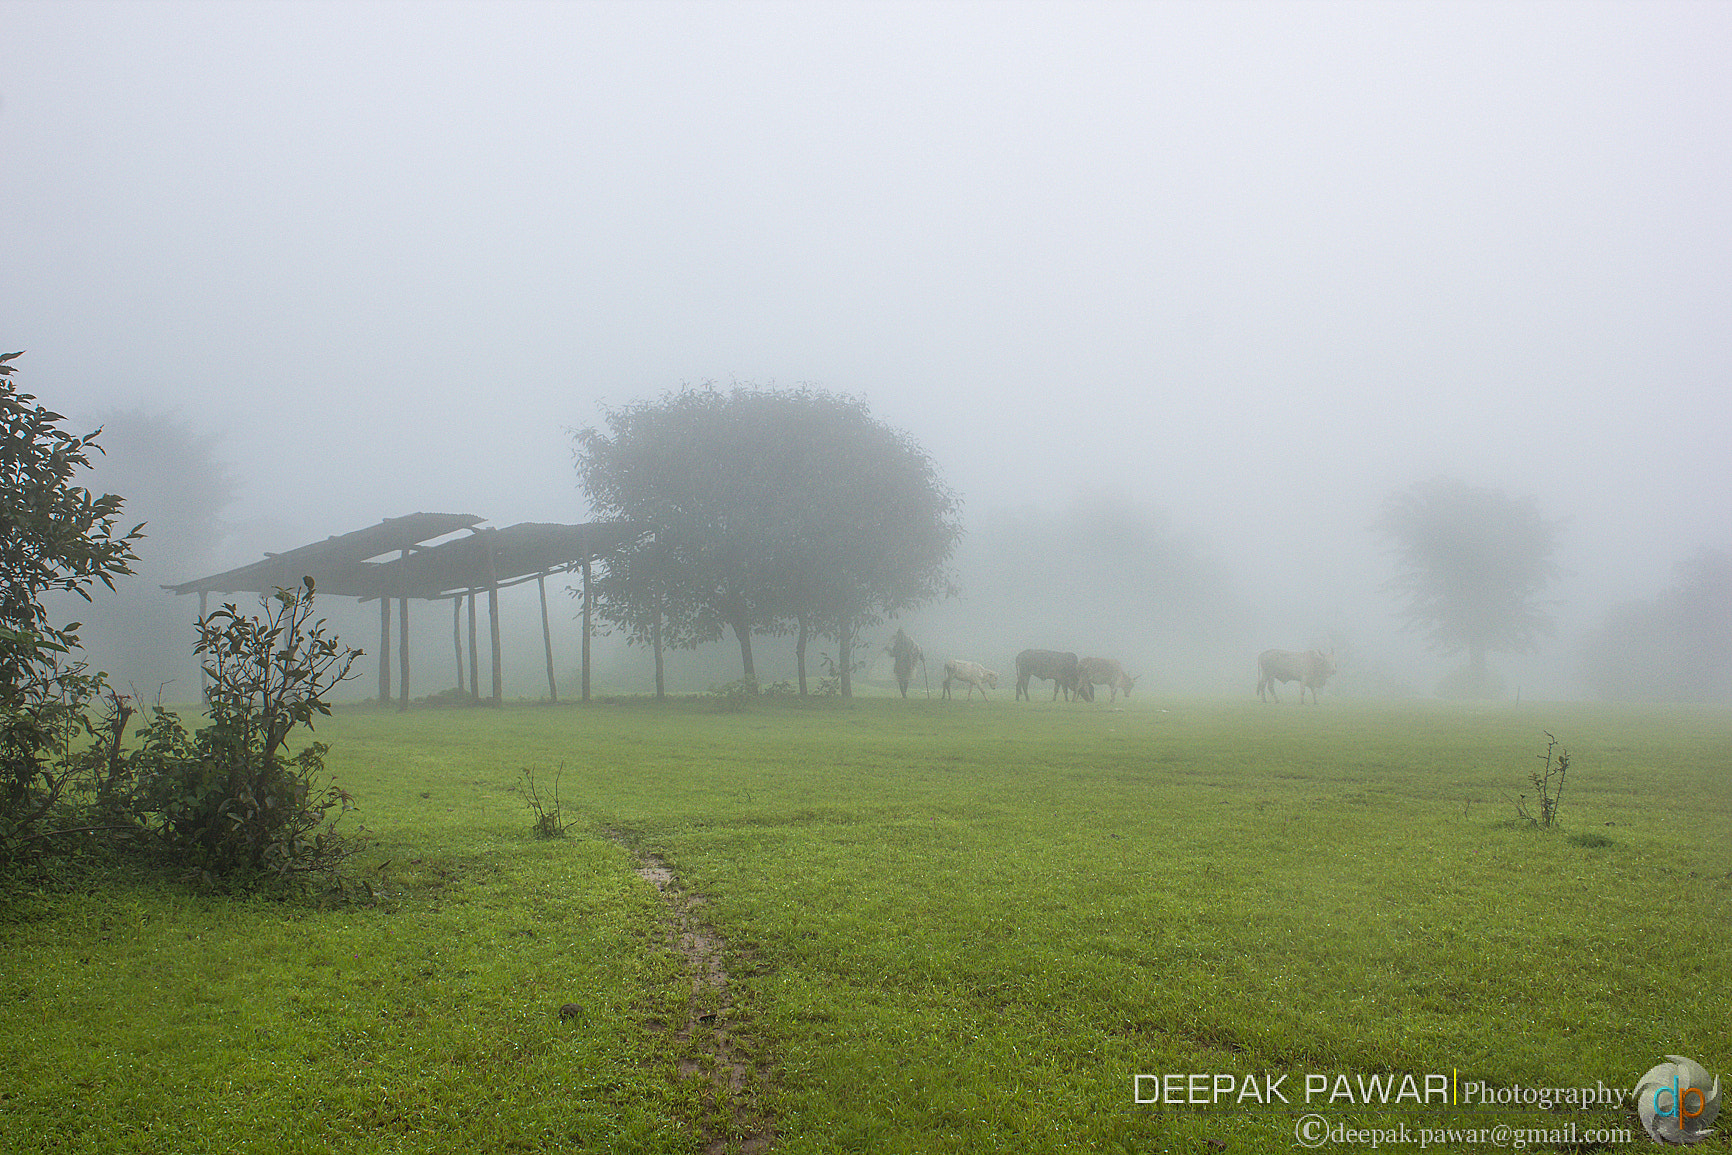 Photograph Cattle in the smog by Deepak Pawar on 500px